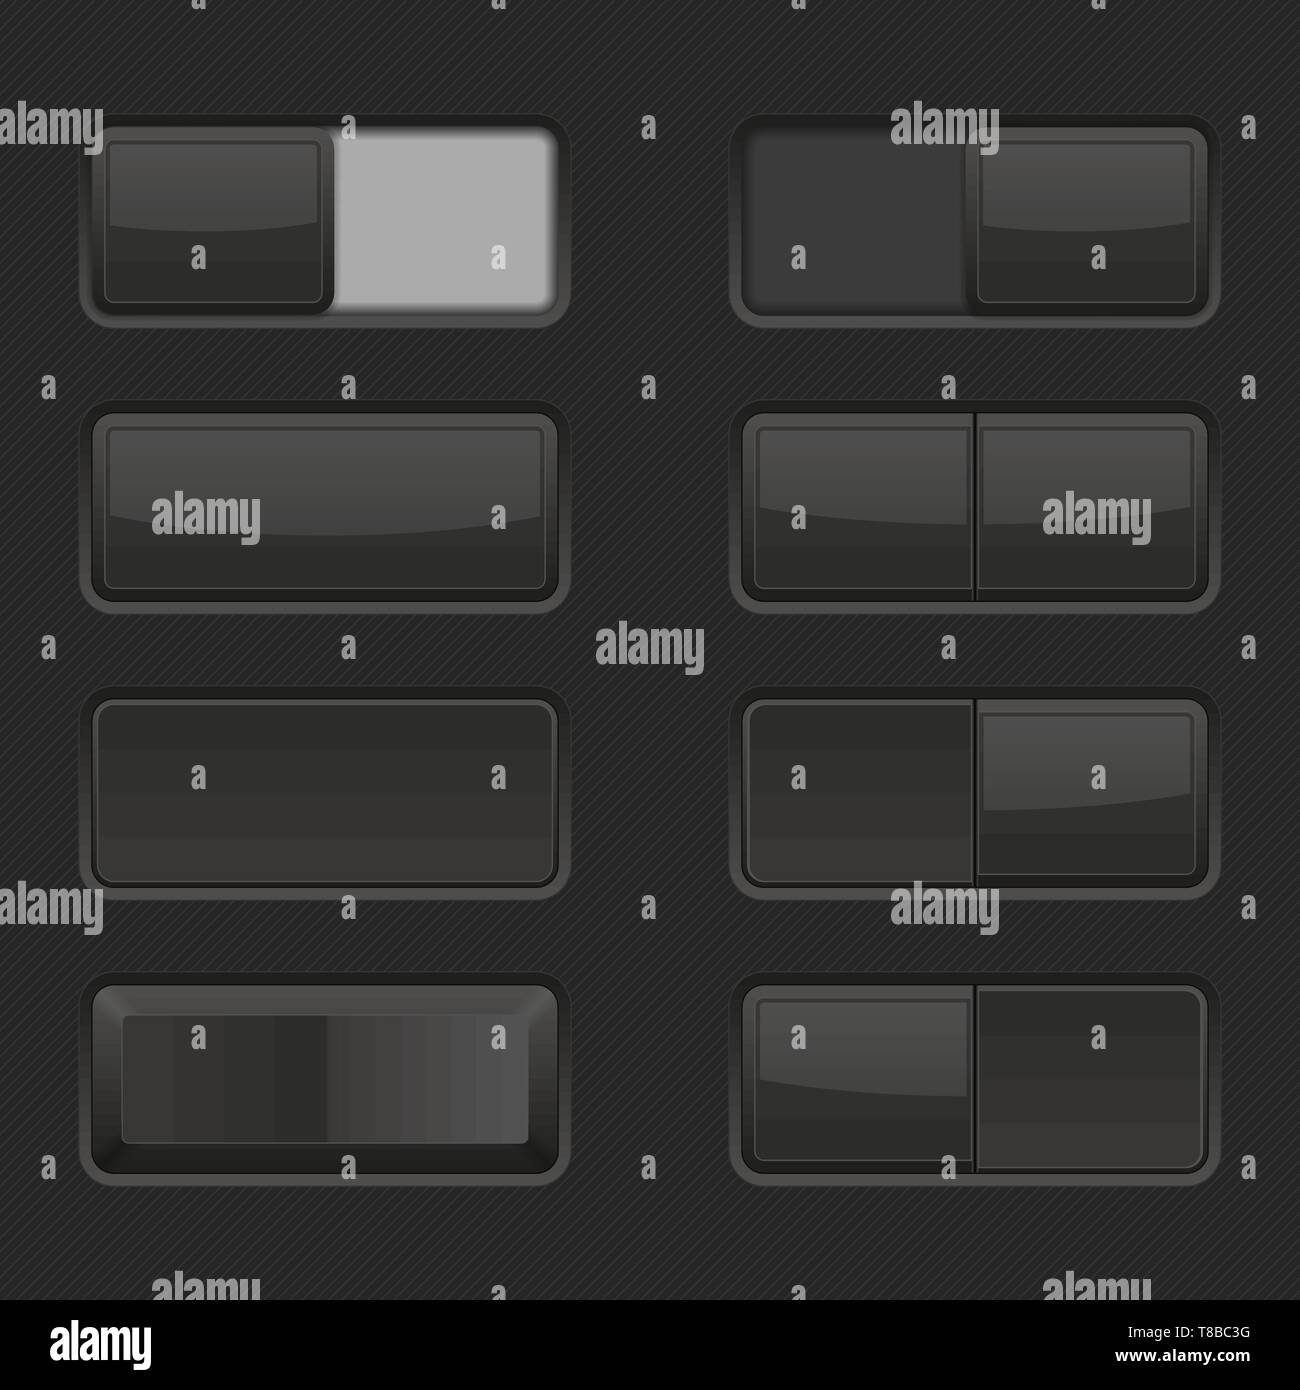 Toggle switch buttons and Push buttons. Black elements - Stock Image